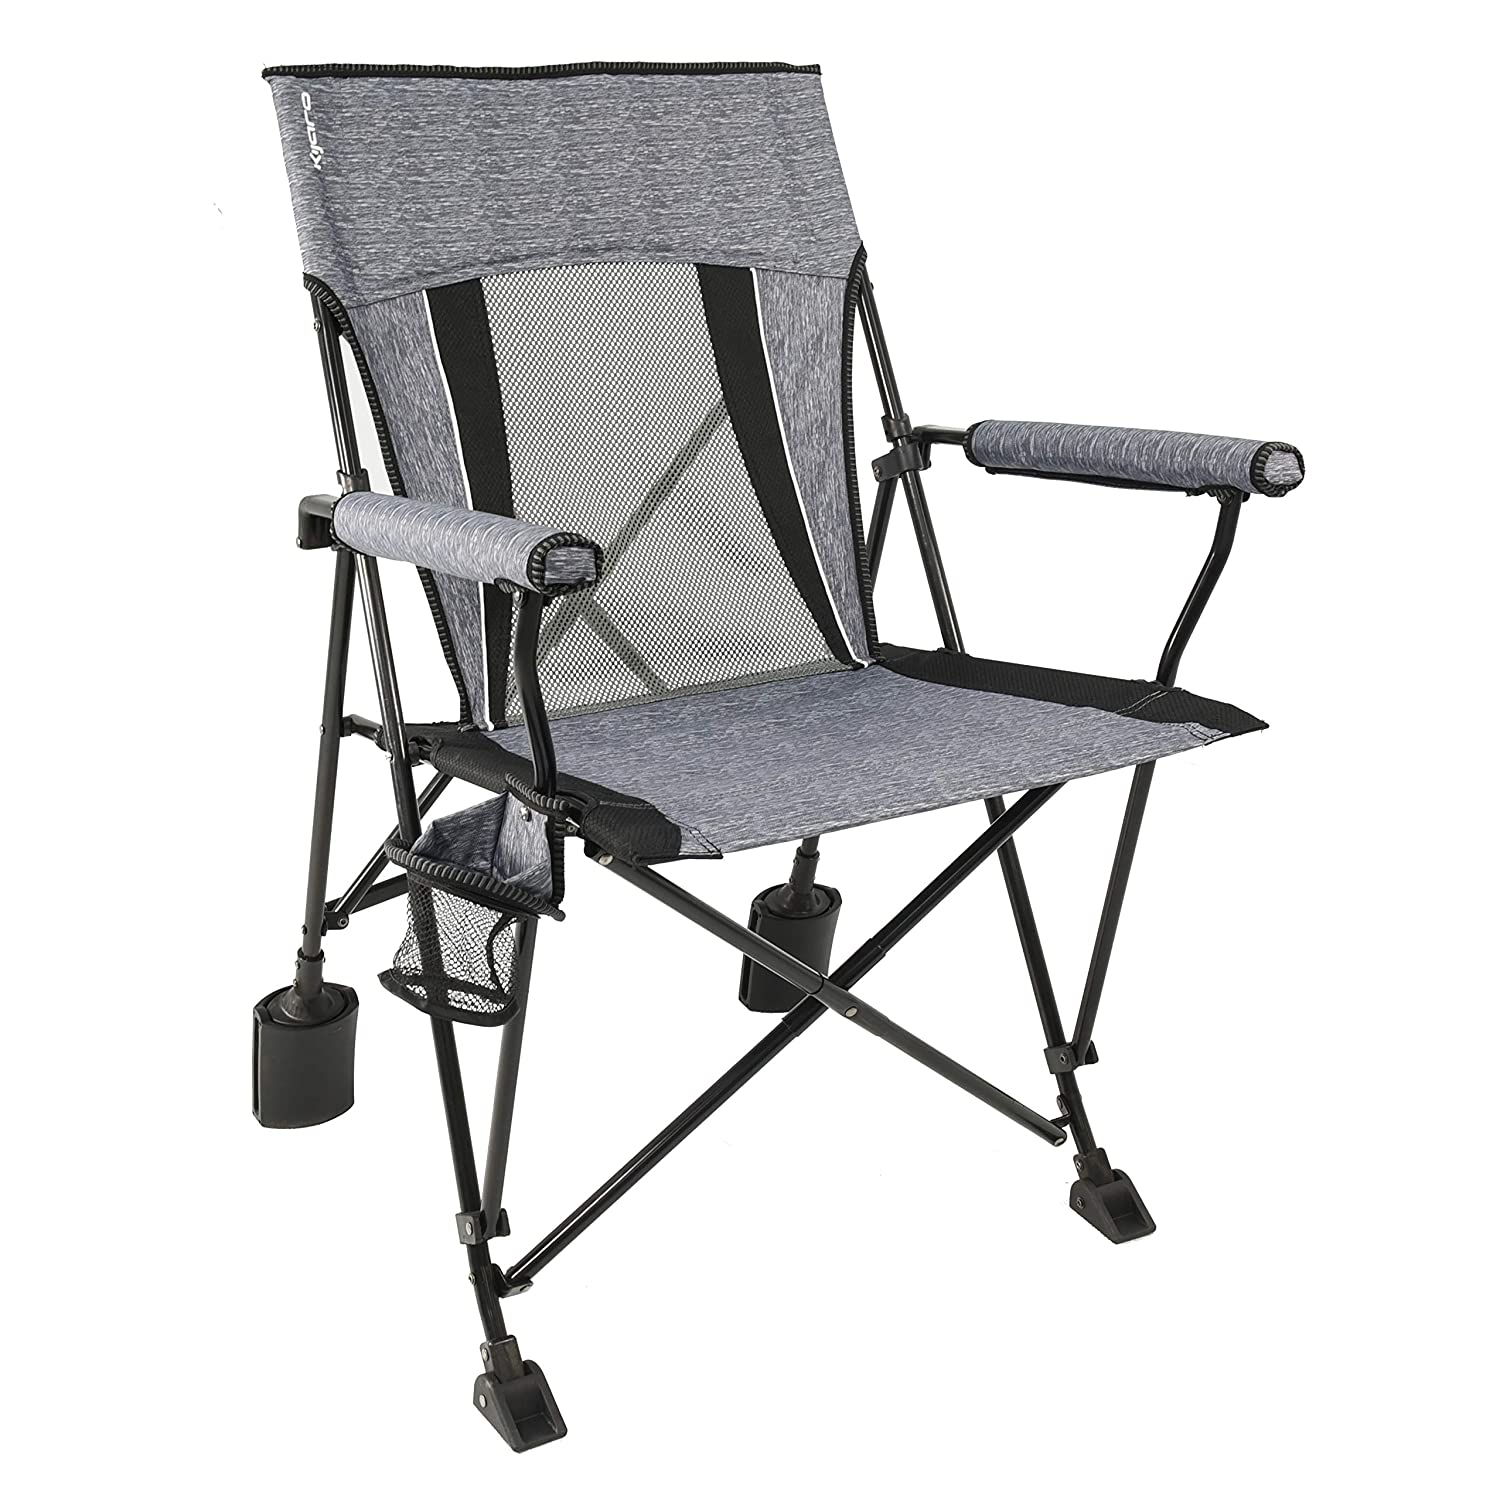 Astounding Kijaro Rok It Folding Rocking Chair Gmtry Best Dining Table And Chair Ideas Images Gmtryco